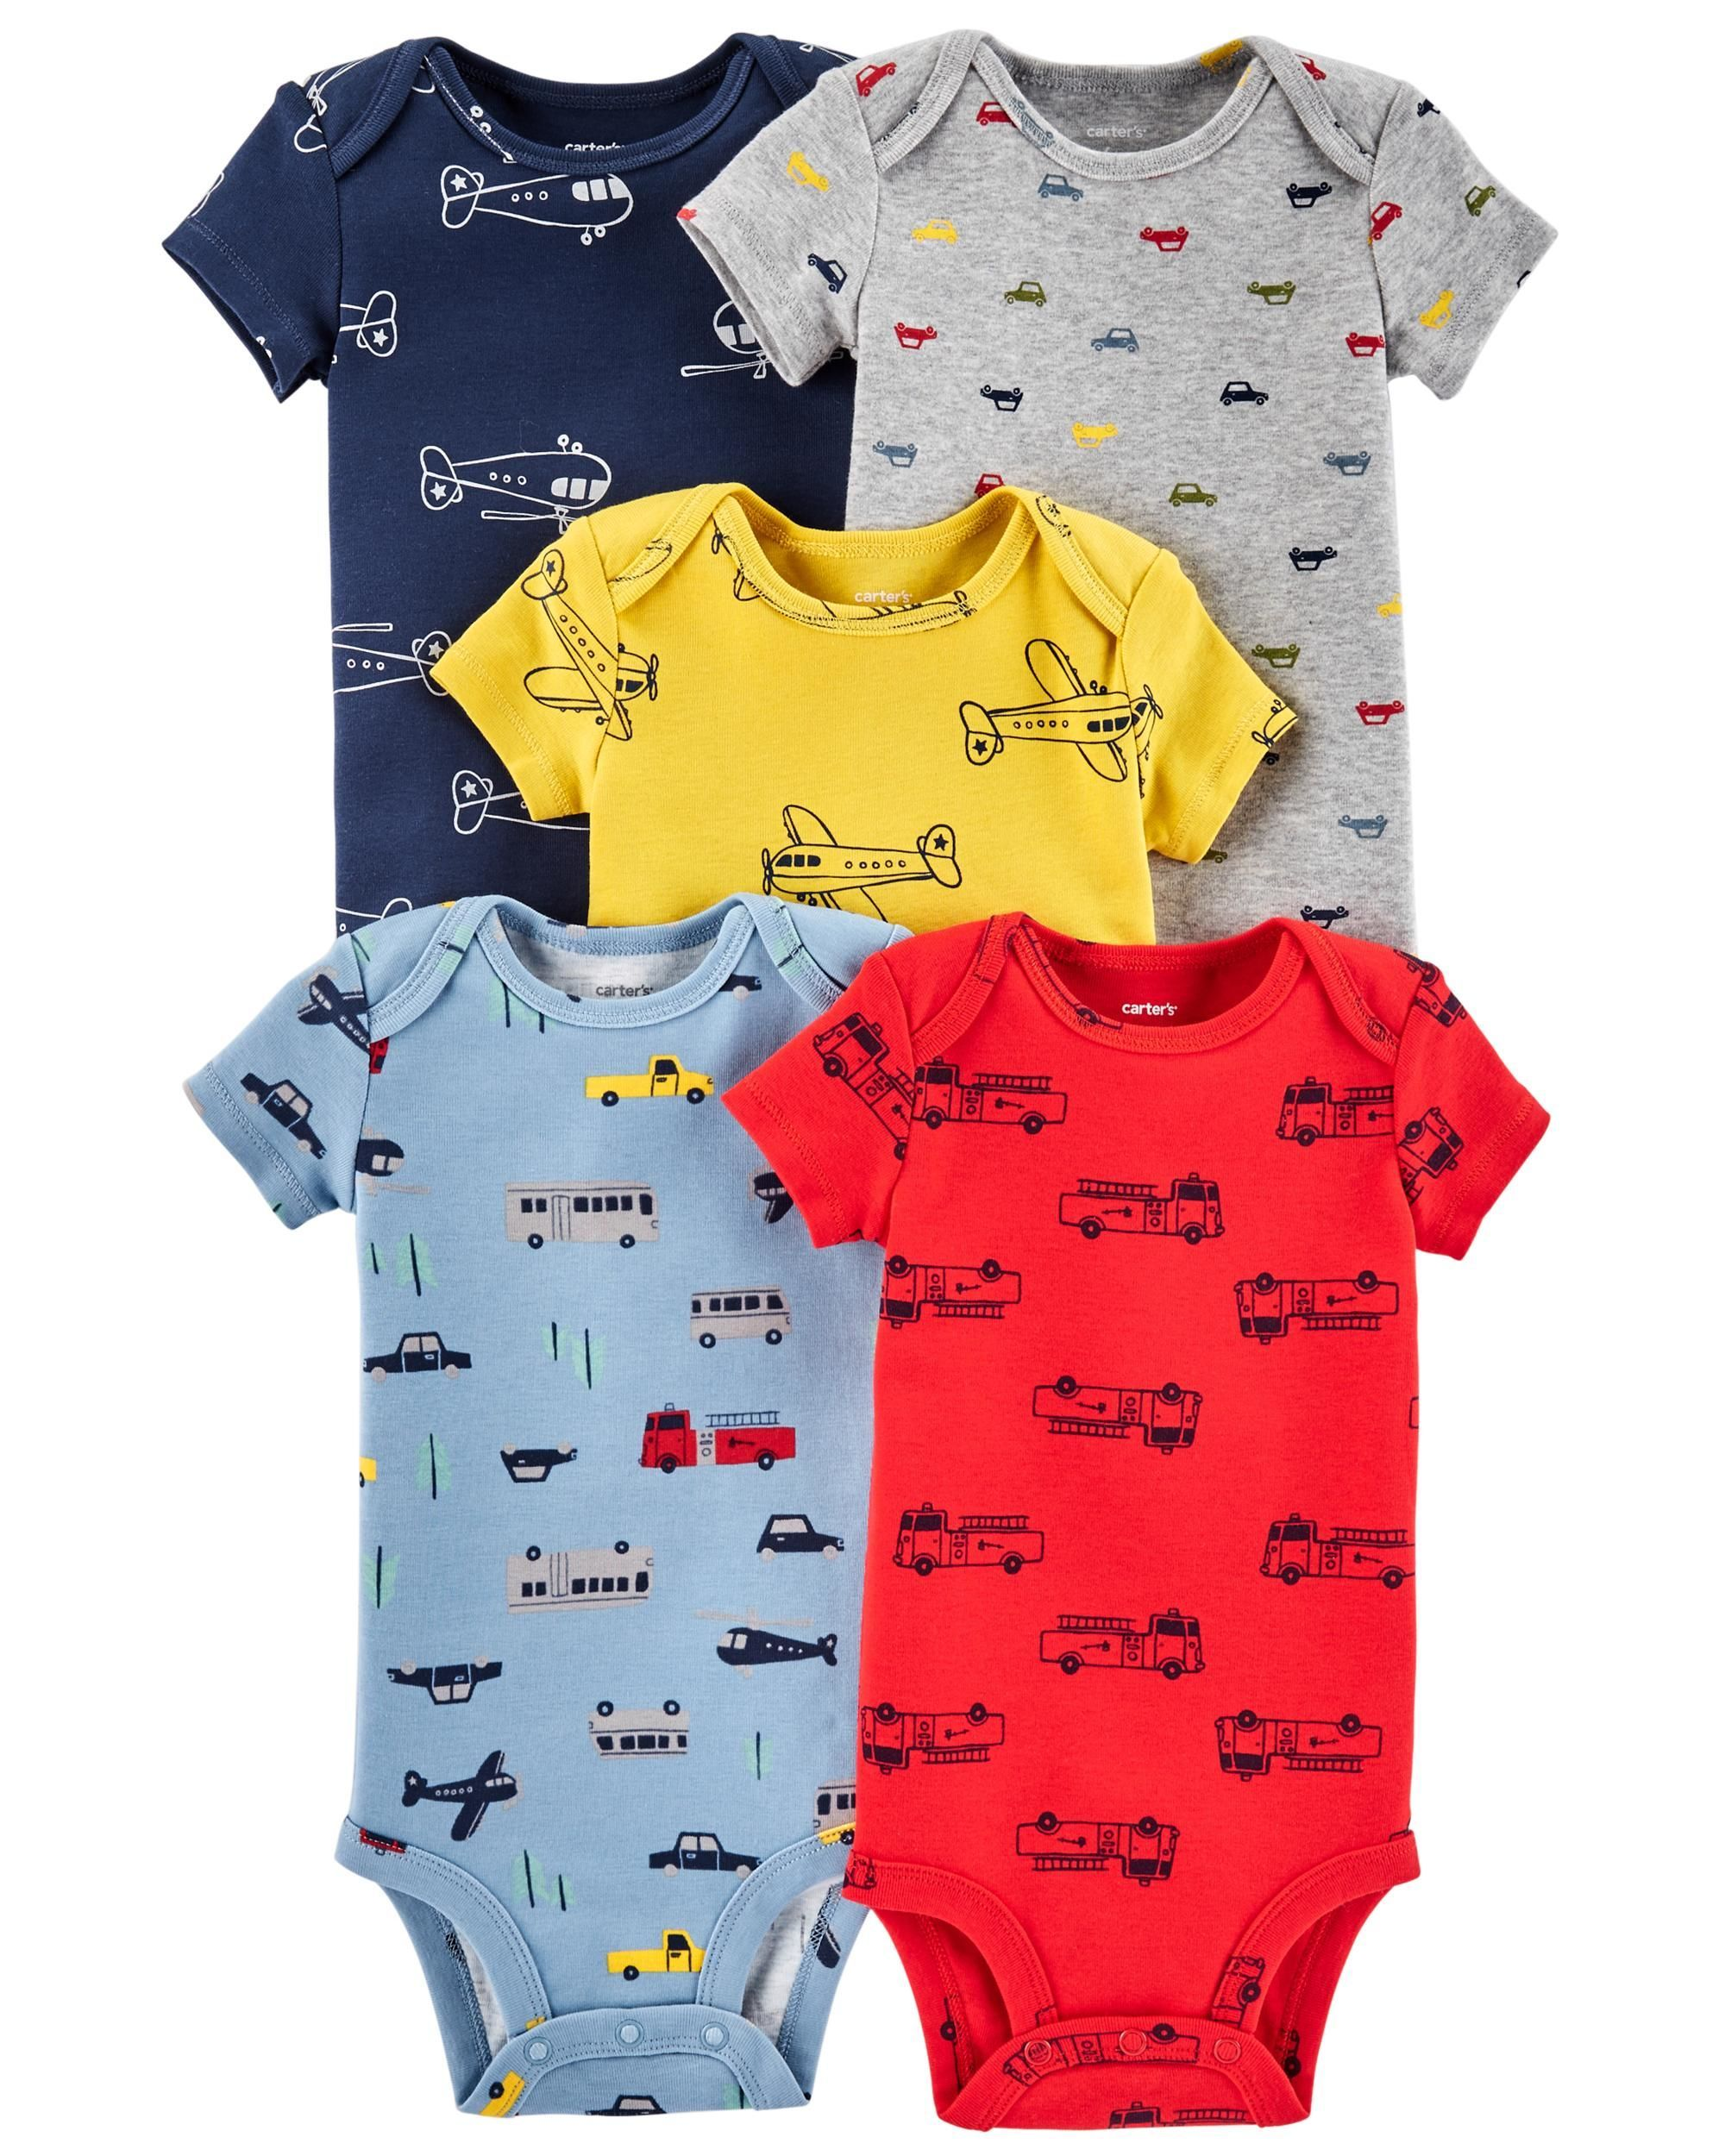 6a3f24ec5 5-Pack Vehicle Original Bodysuits | for the little one | Carters ...